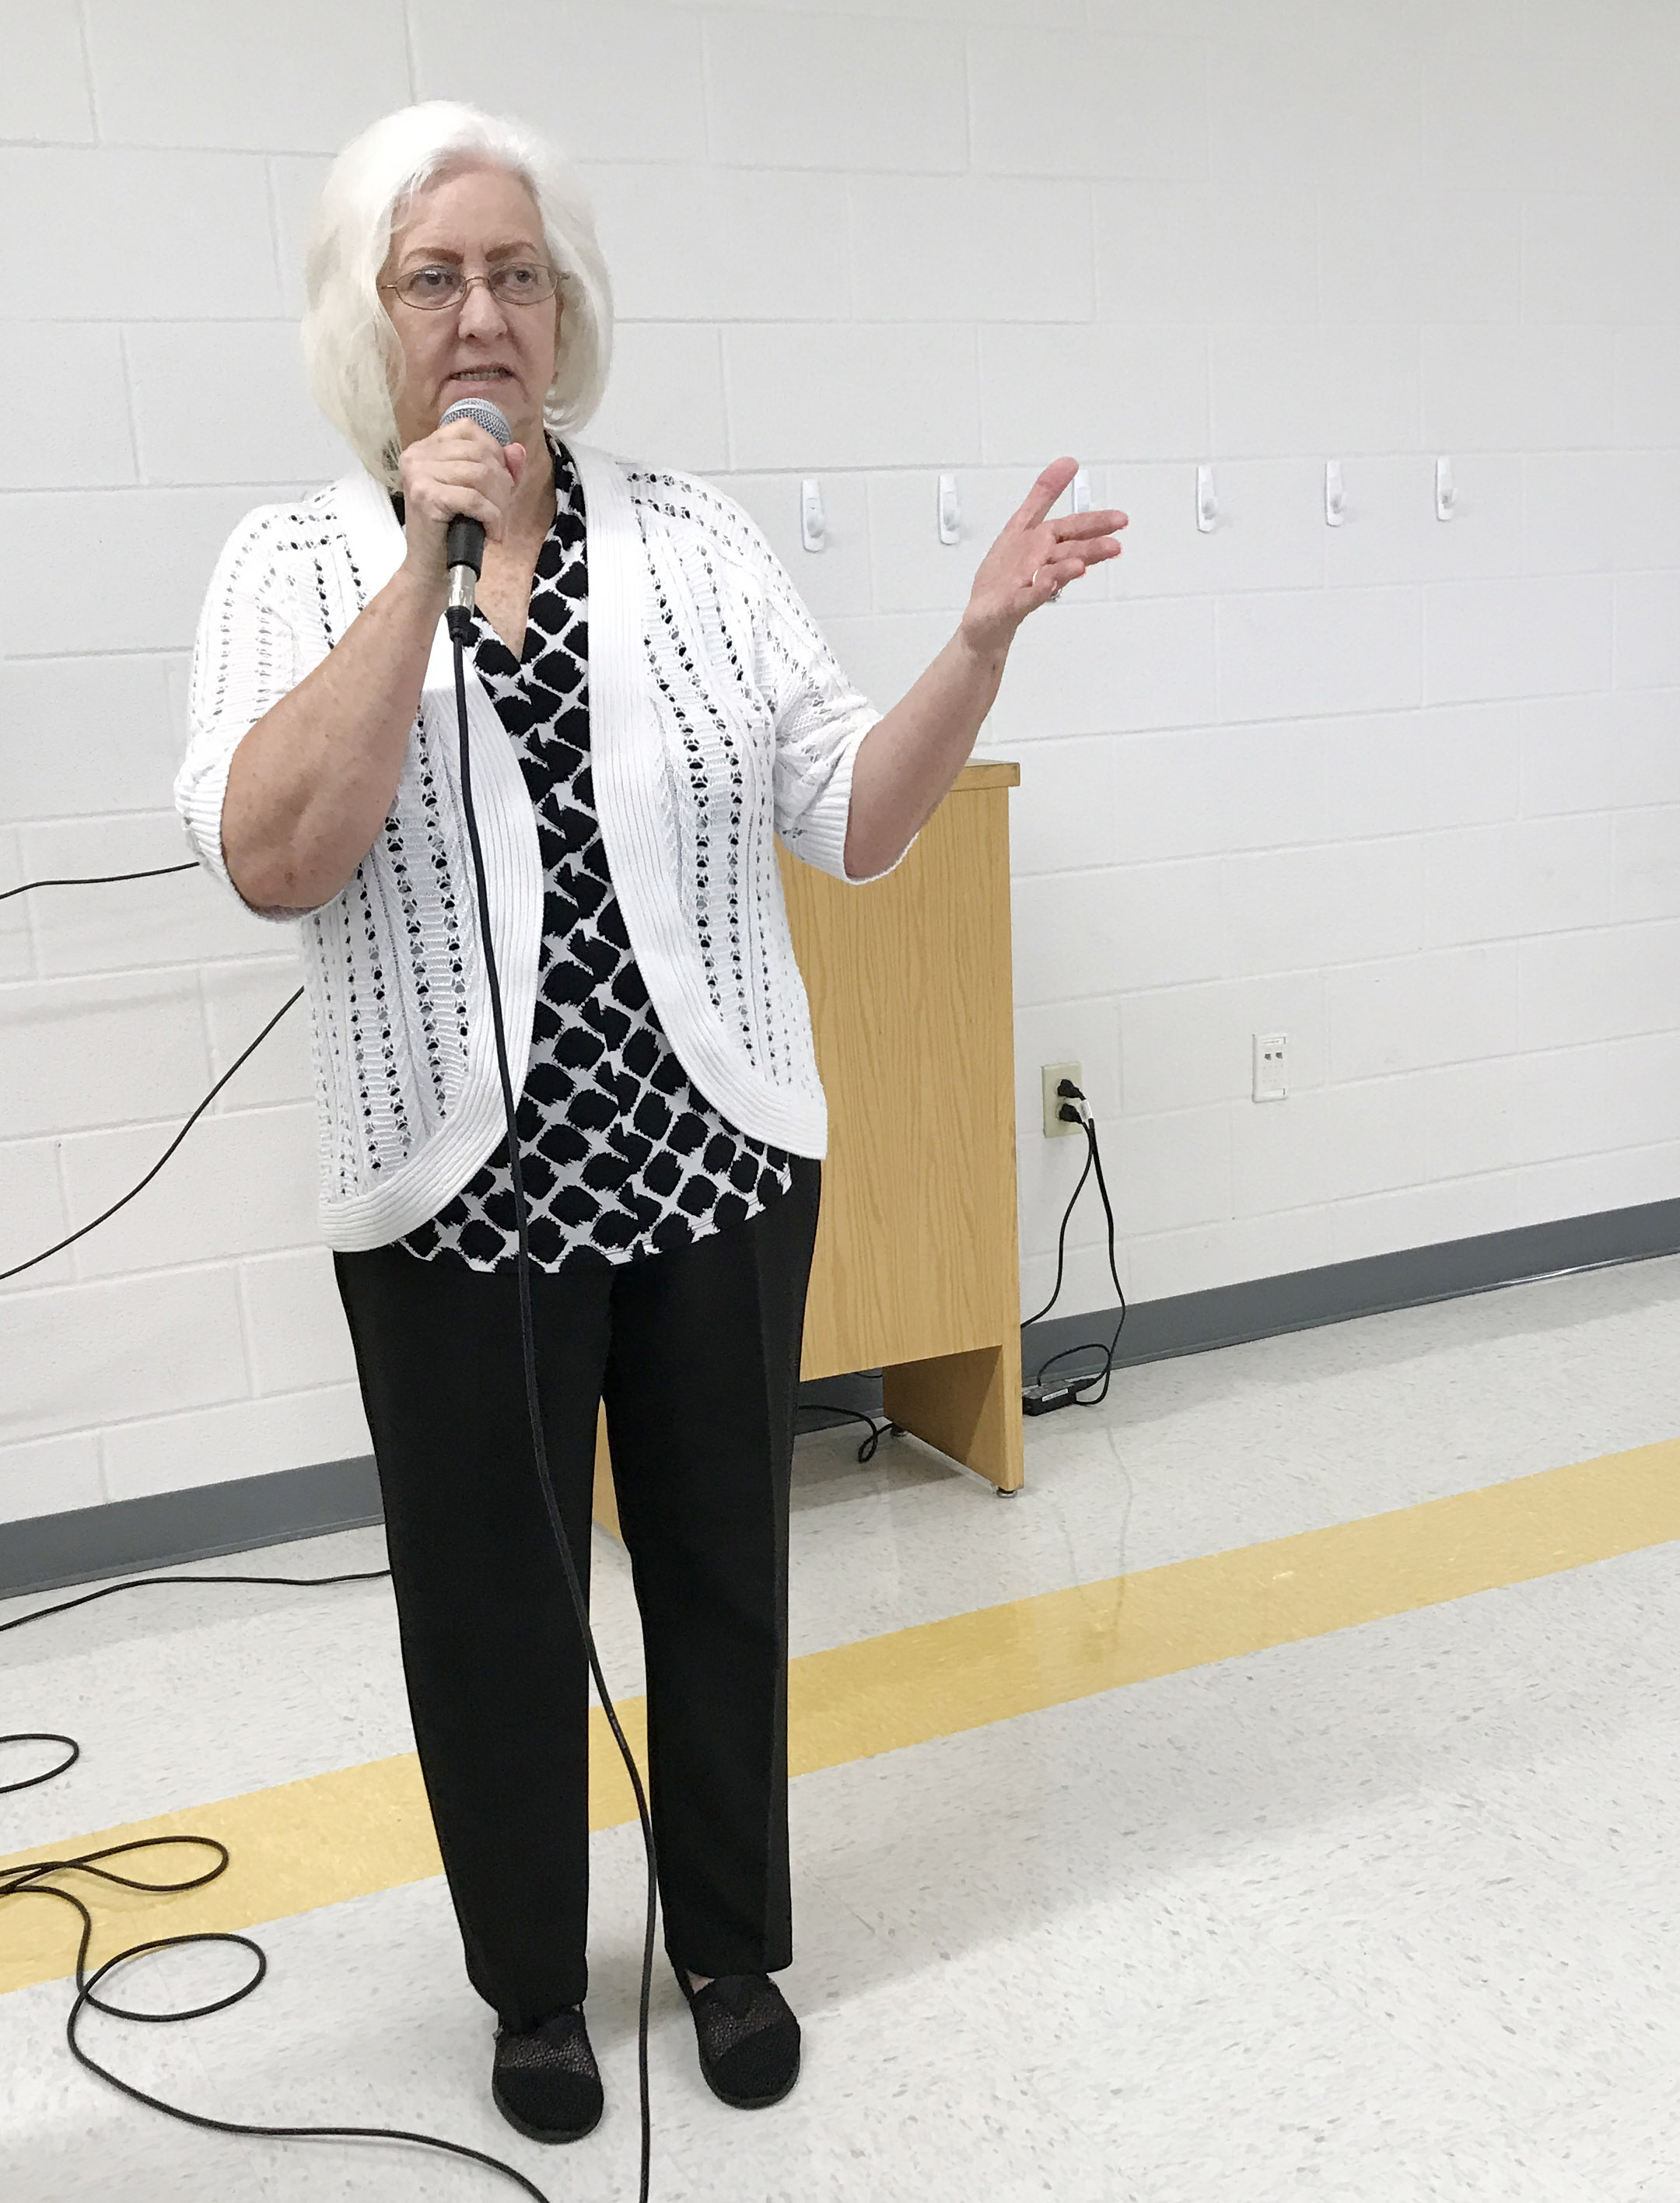 Campbellsville Board of Education Chair Pat Hall talks to the District's staff members during the opening day workshop for the 2017-2018 school year.